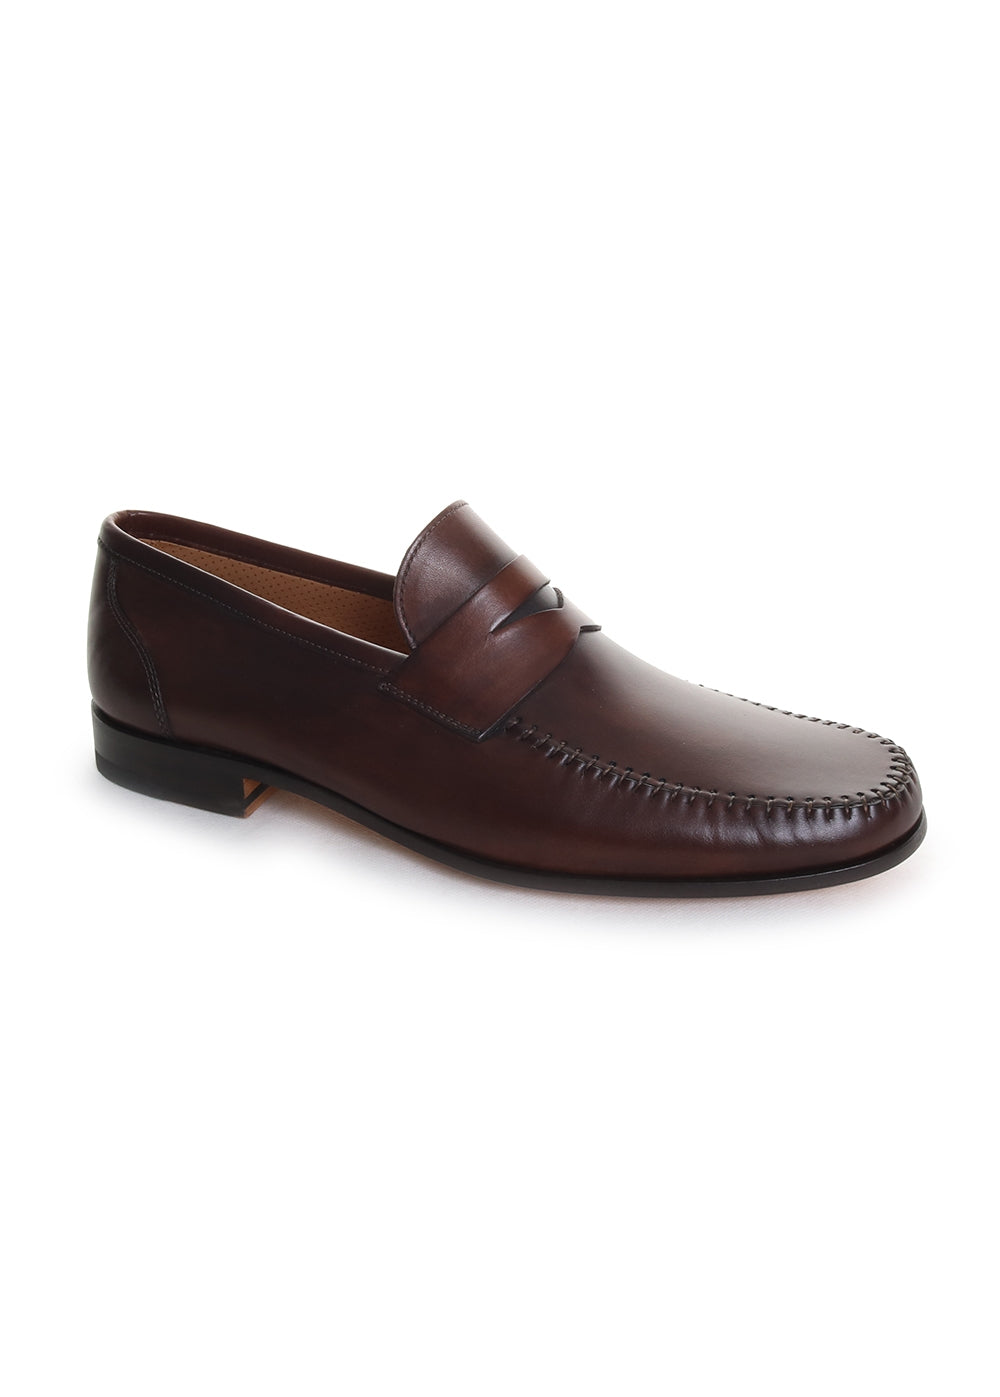 Ramos Leather Penny Loafers